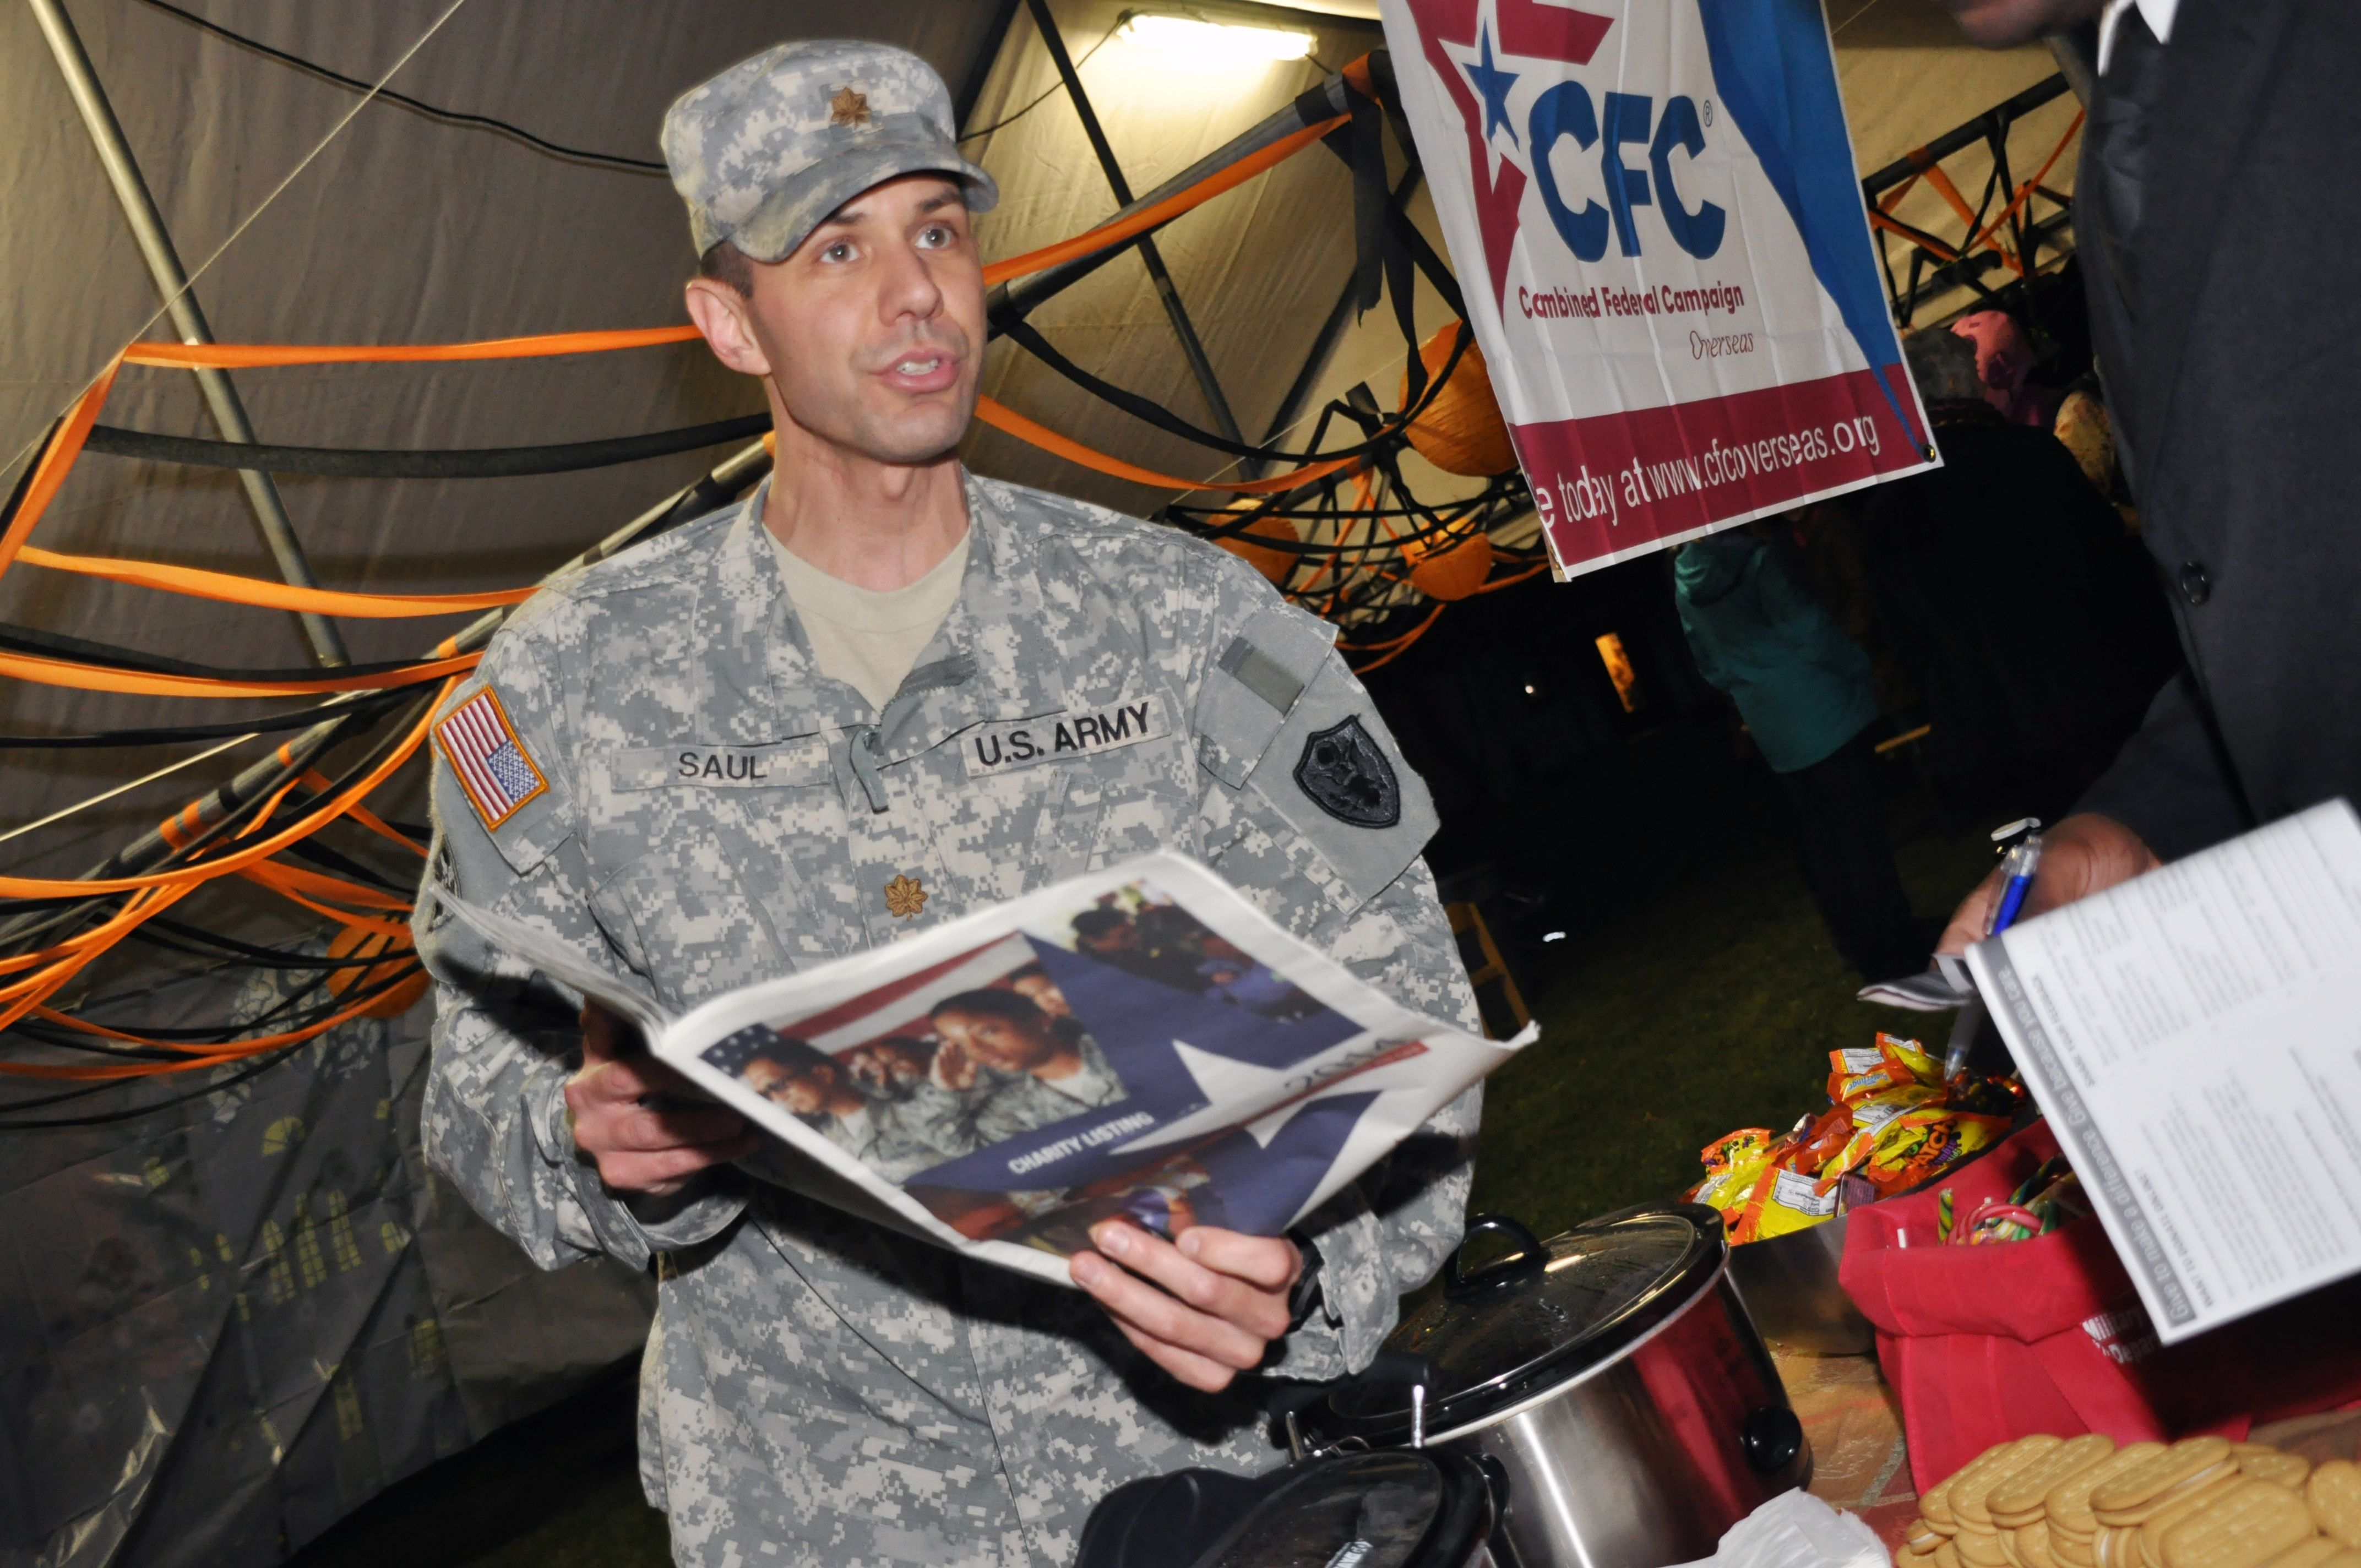 @Marshall_Center's @CFCOverseas campaign goes #trick-or-treating @USAGBavaria  U.S. Army Maj. Nathan Saul, CFC representative at the George C. Marshall European Center for Security Studies, hands out candy, cookies and hot chocolate while spreading the news about CFC during the Spooktacular Halloween event here Oct. 31. For more photos, go to https://www.flickr.com/photos/gcmcphotos/sets/72157649103247932/ (DOD photo by U.S. Army Sgt. Jason Edwards/RELEASED)